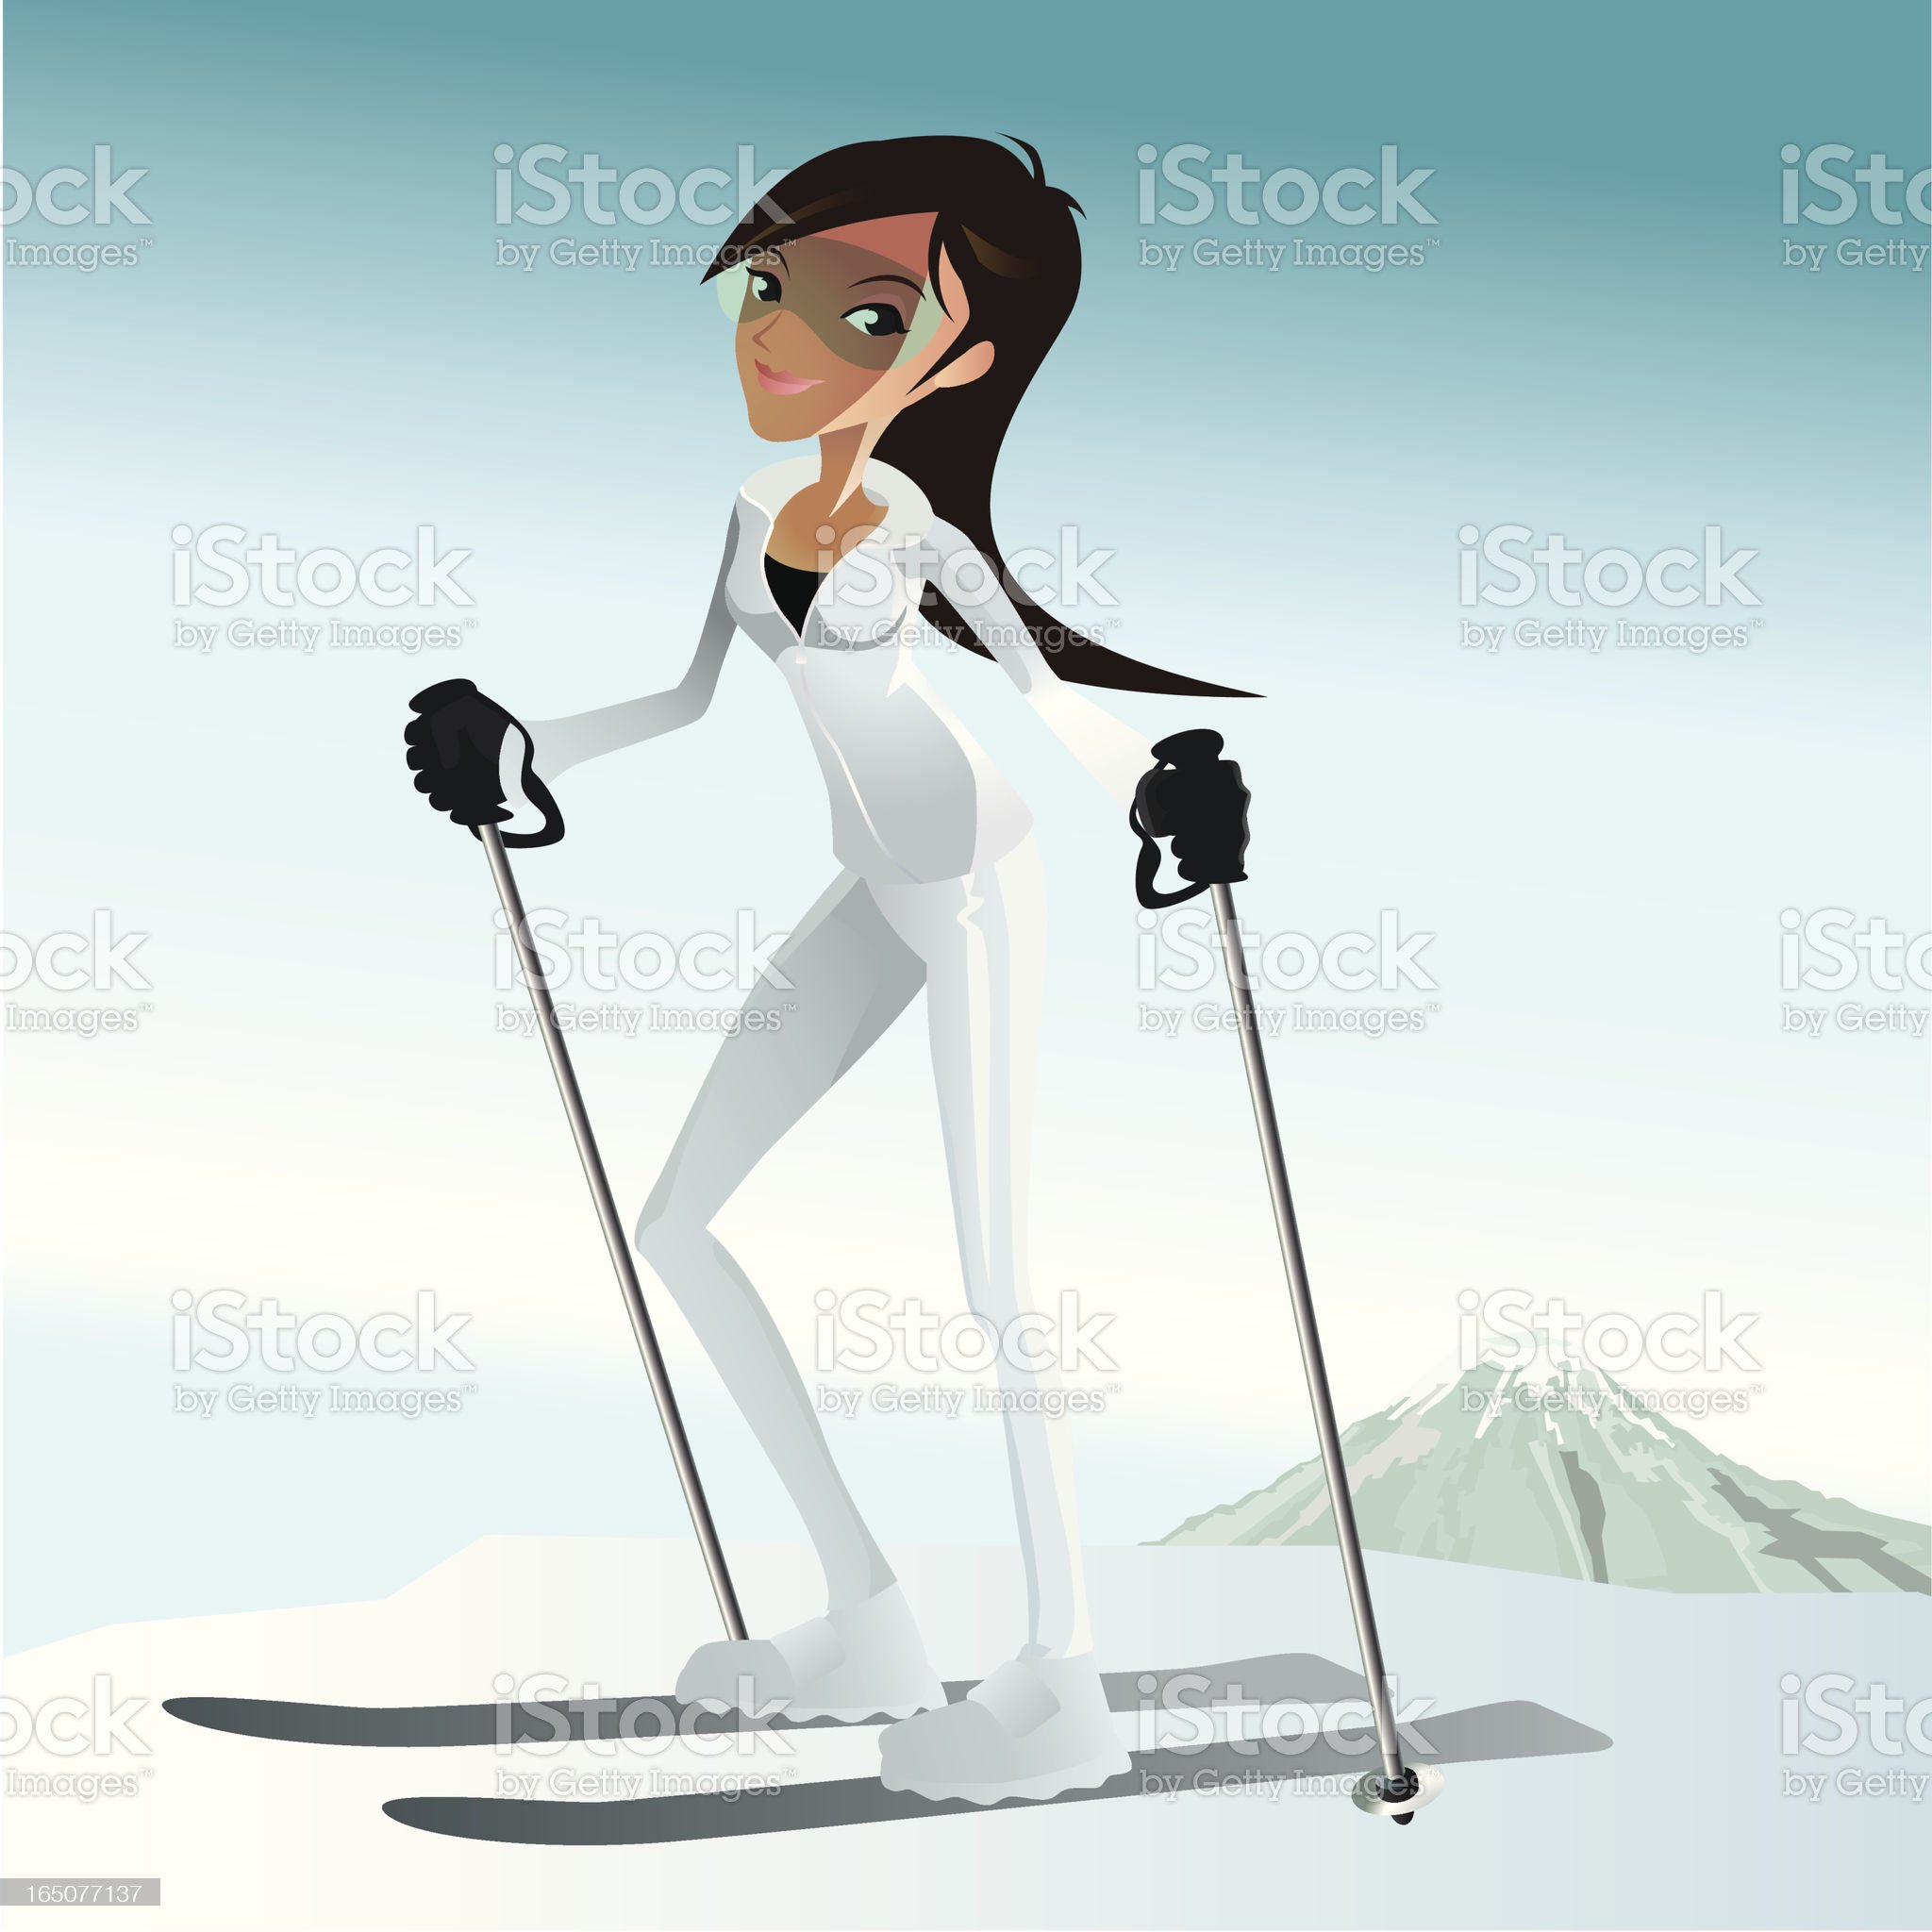 girl ready to ski royalty-free stock vector art